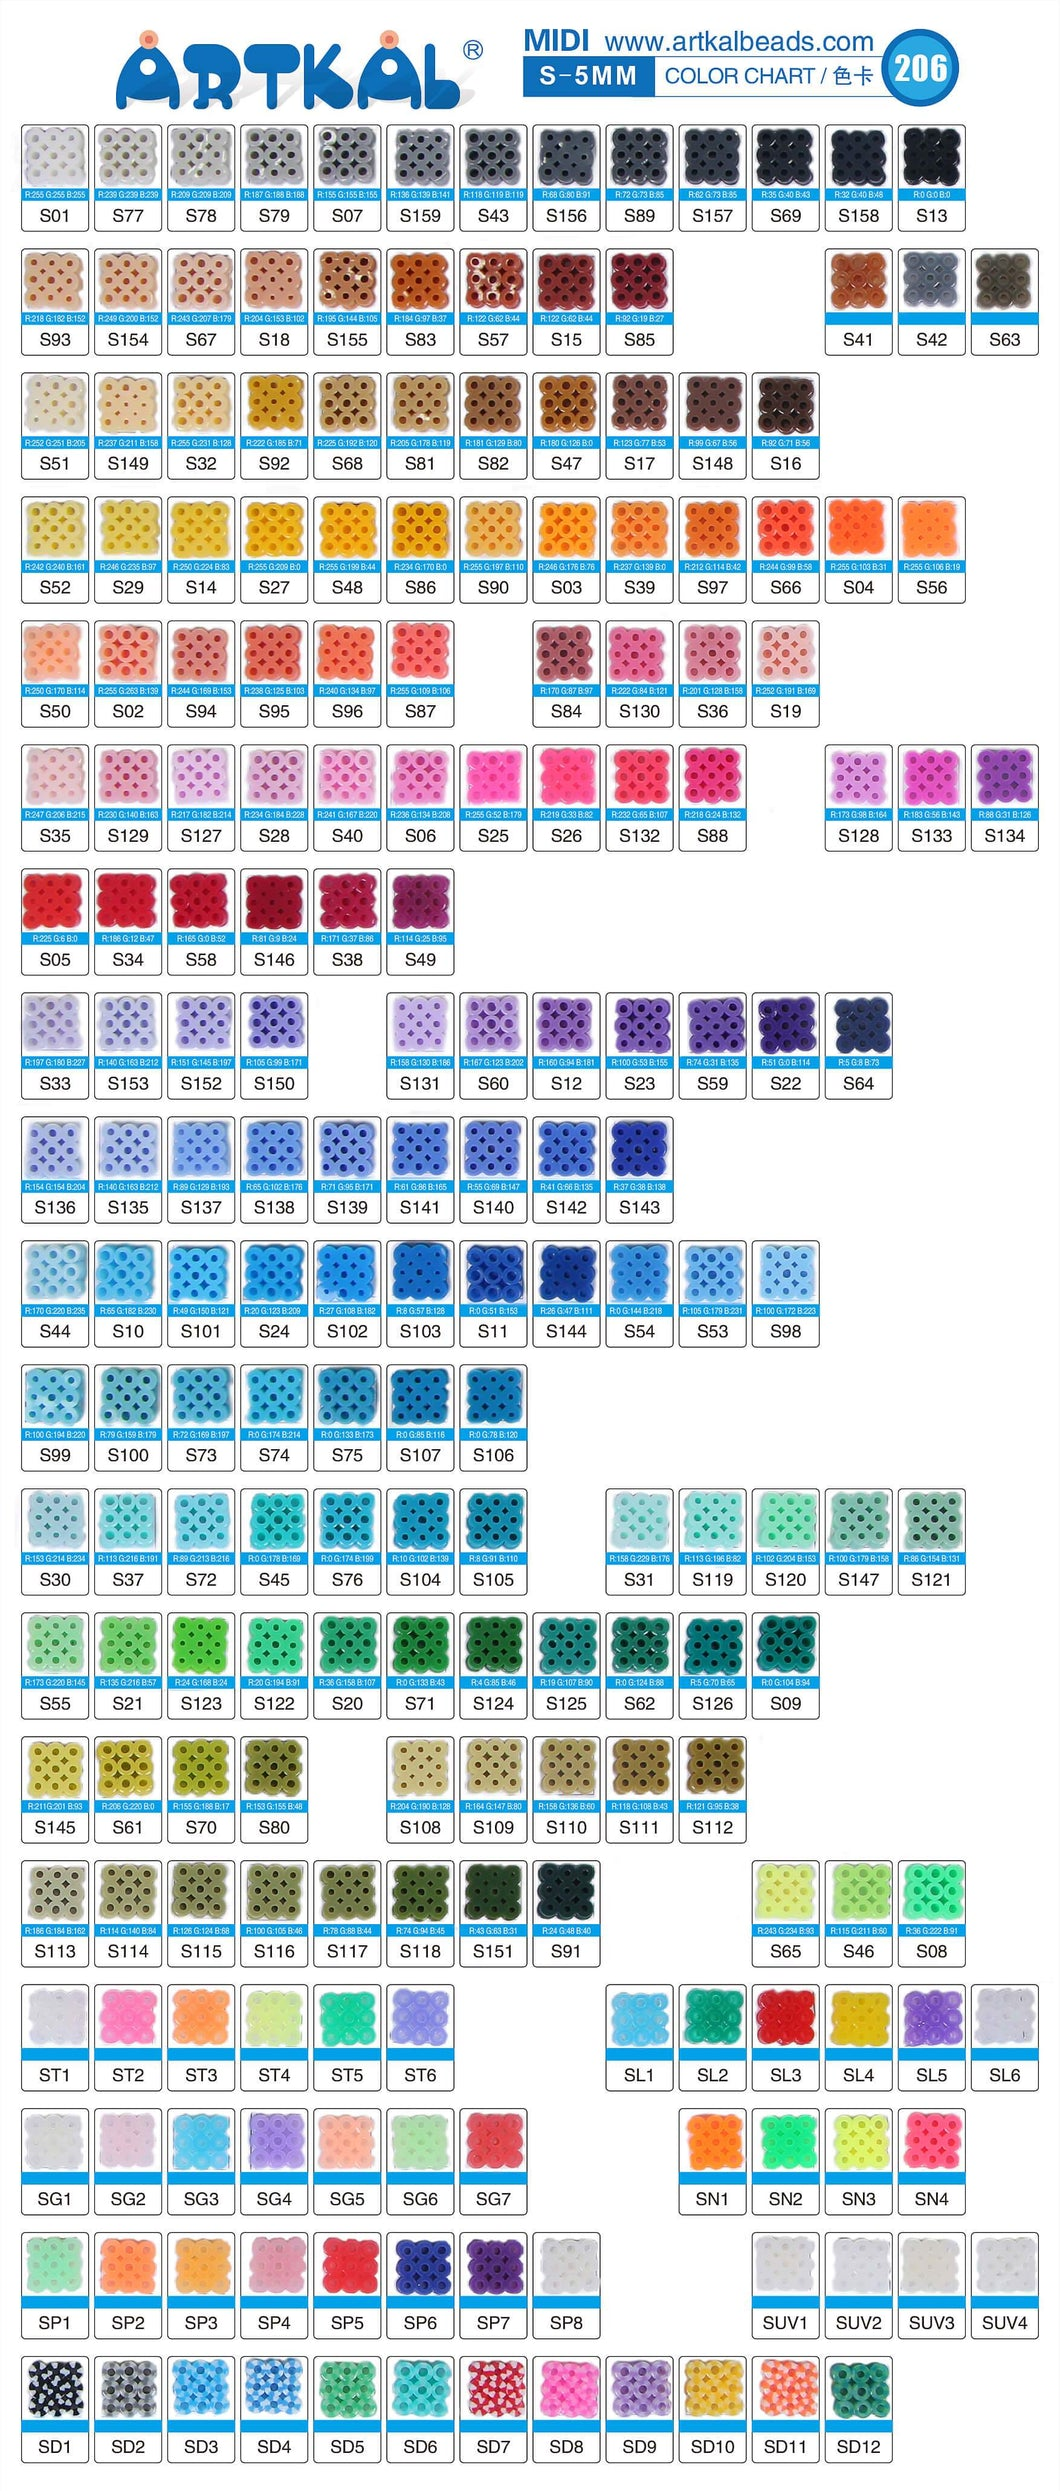 King tut thread color chart images free any chart examples aurifil thread color chart images free any chart examples aurifil thread color chart choice image free nvjuhfo Image collections